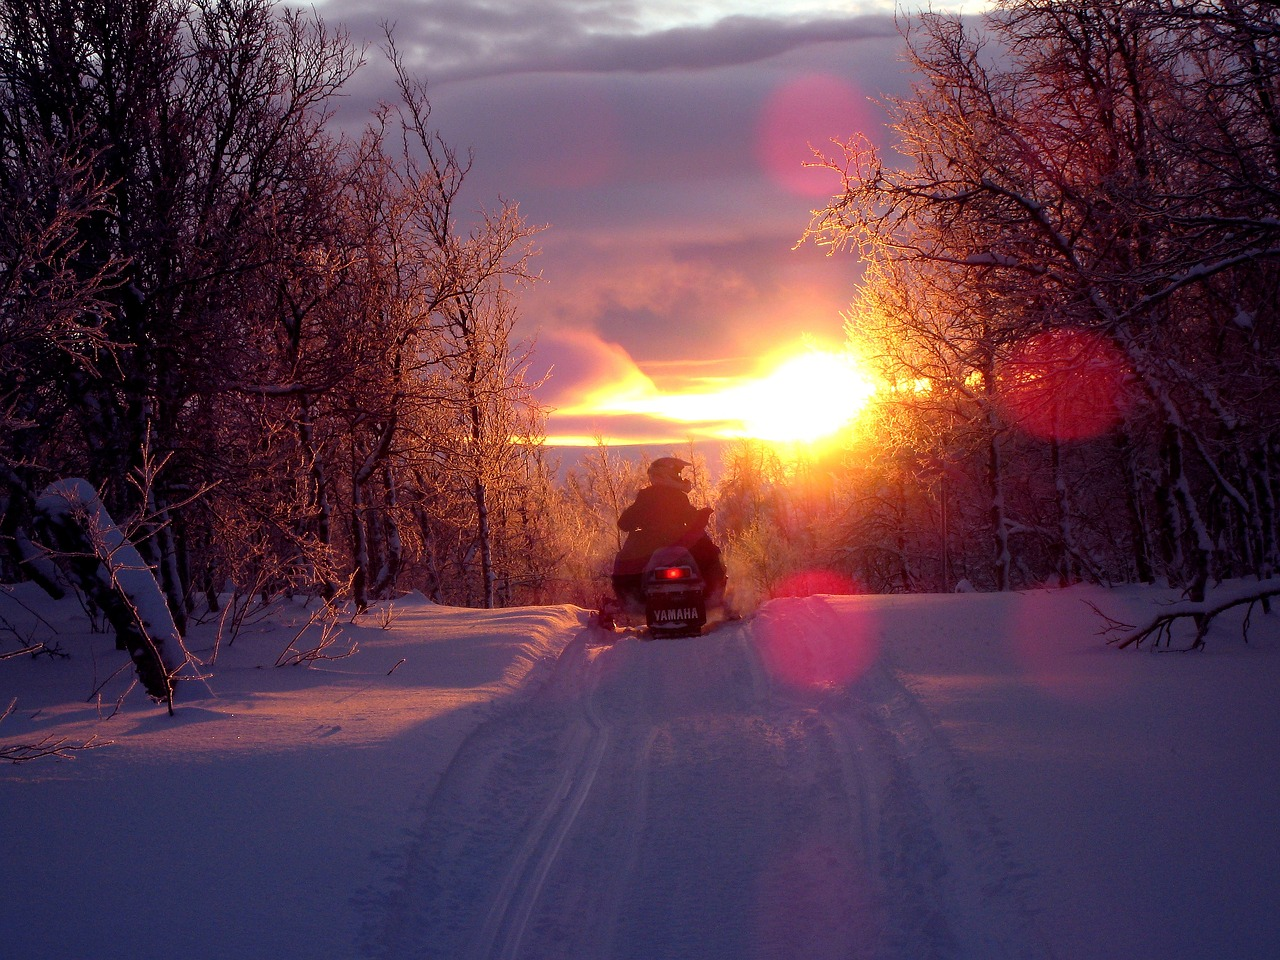 sunset scooter snowmobile free photo